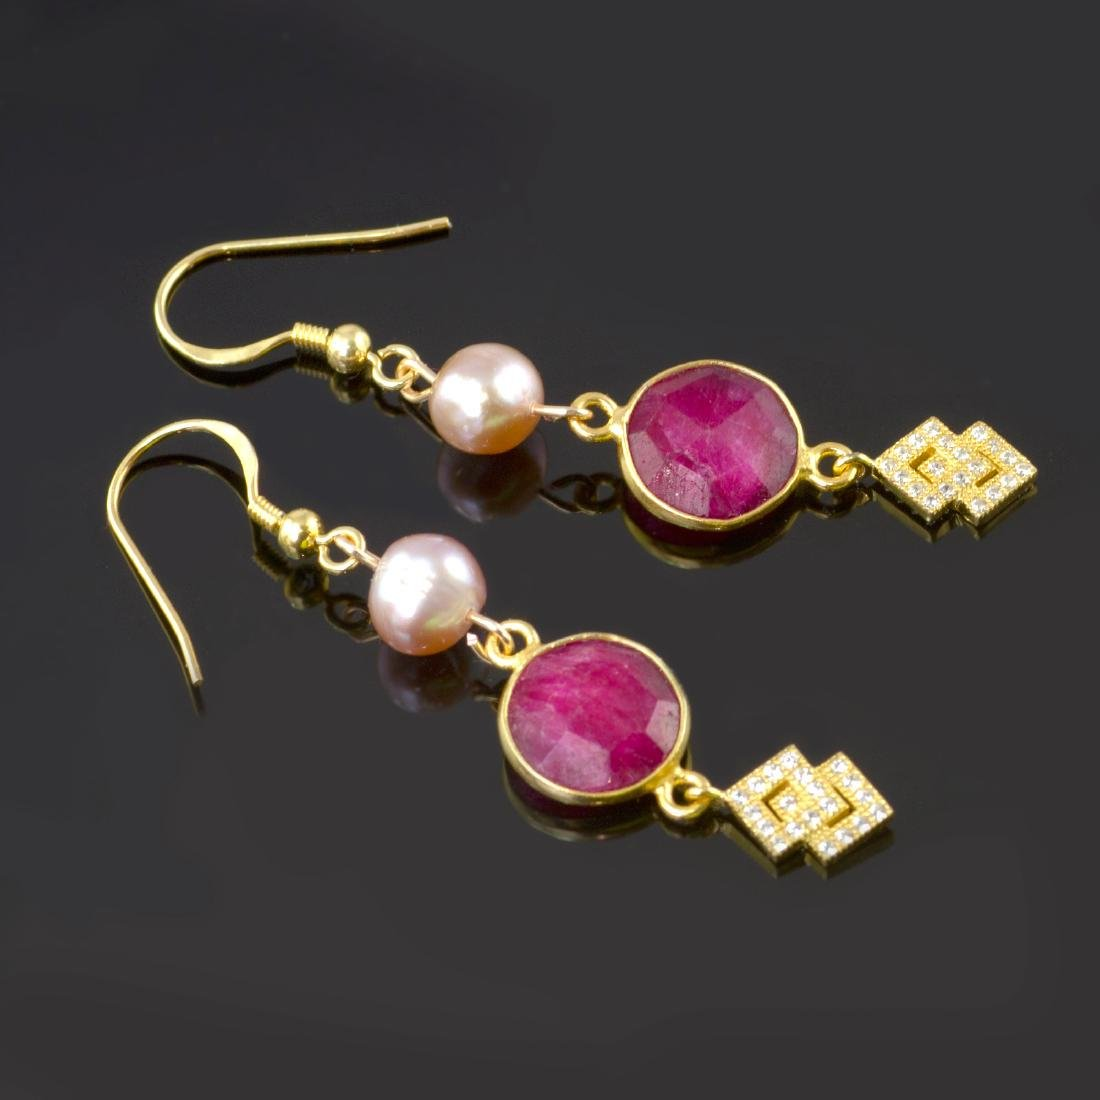 Ruby 5 carat Earrings with Pearls - 3